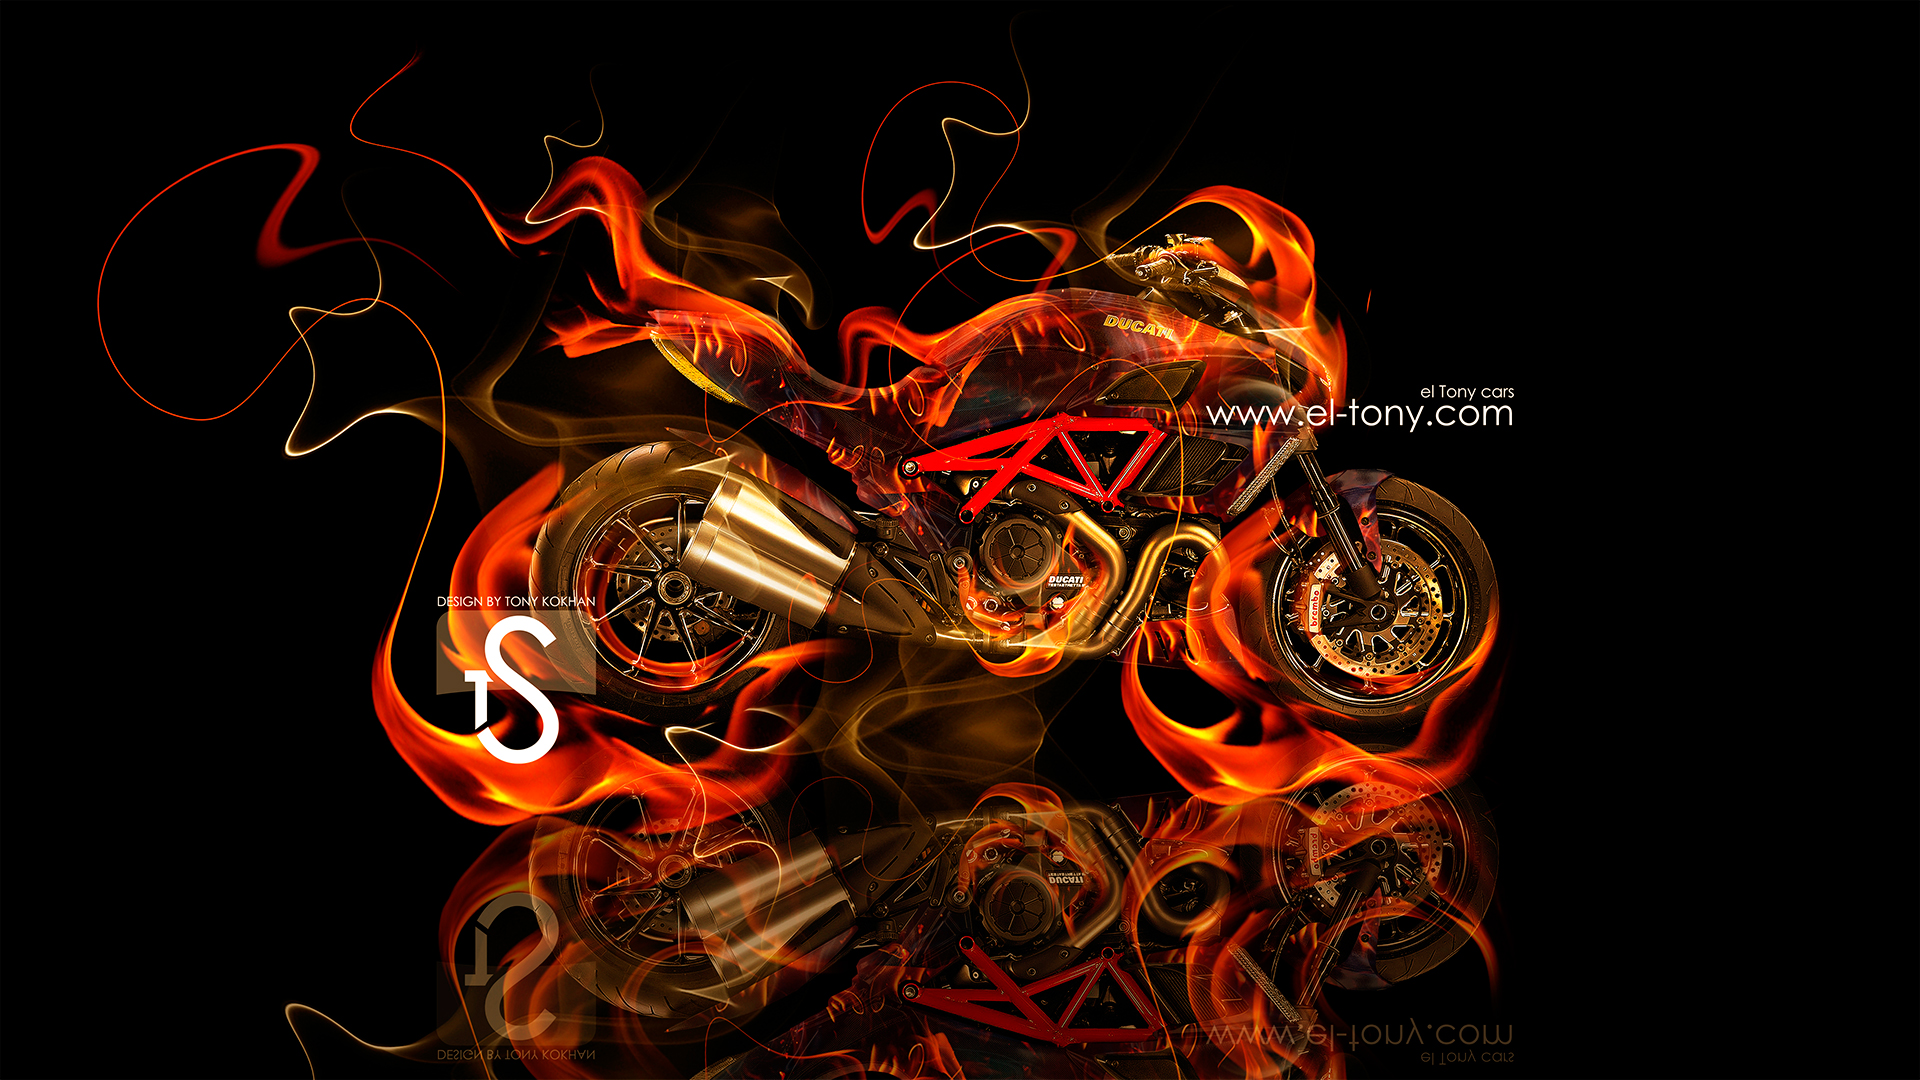 ducati diavel tiger fire - photo #1